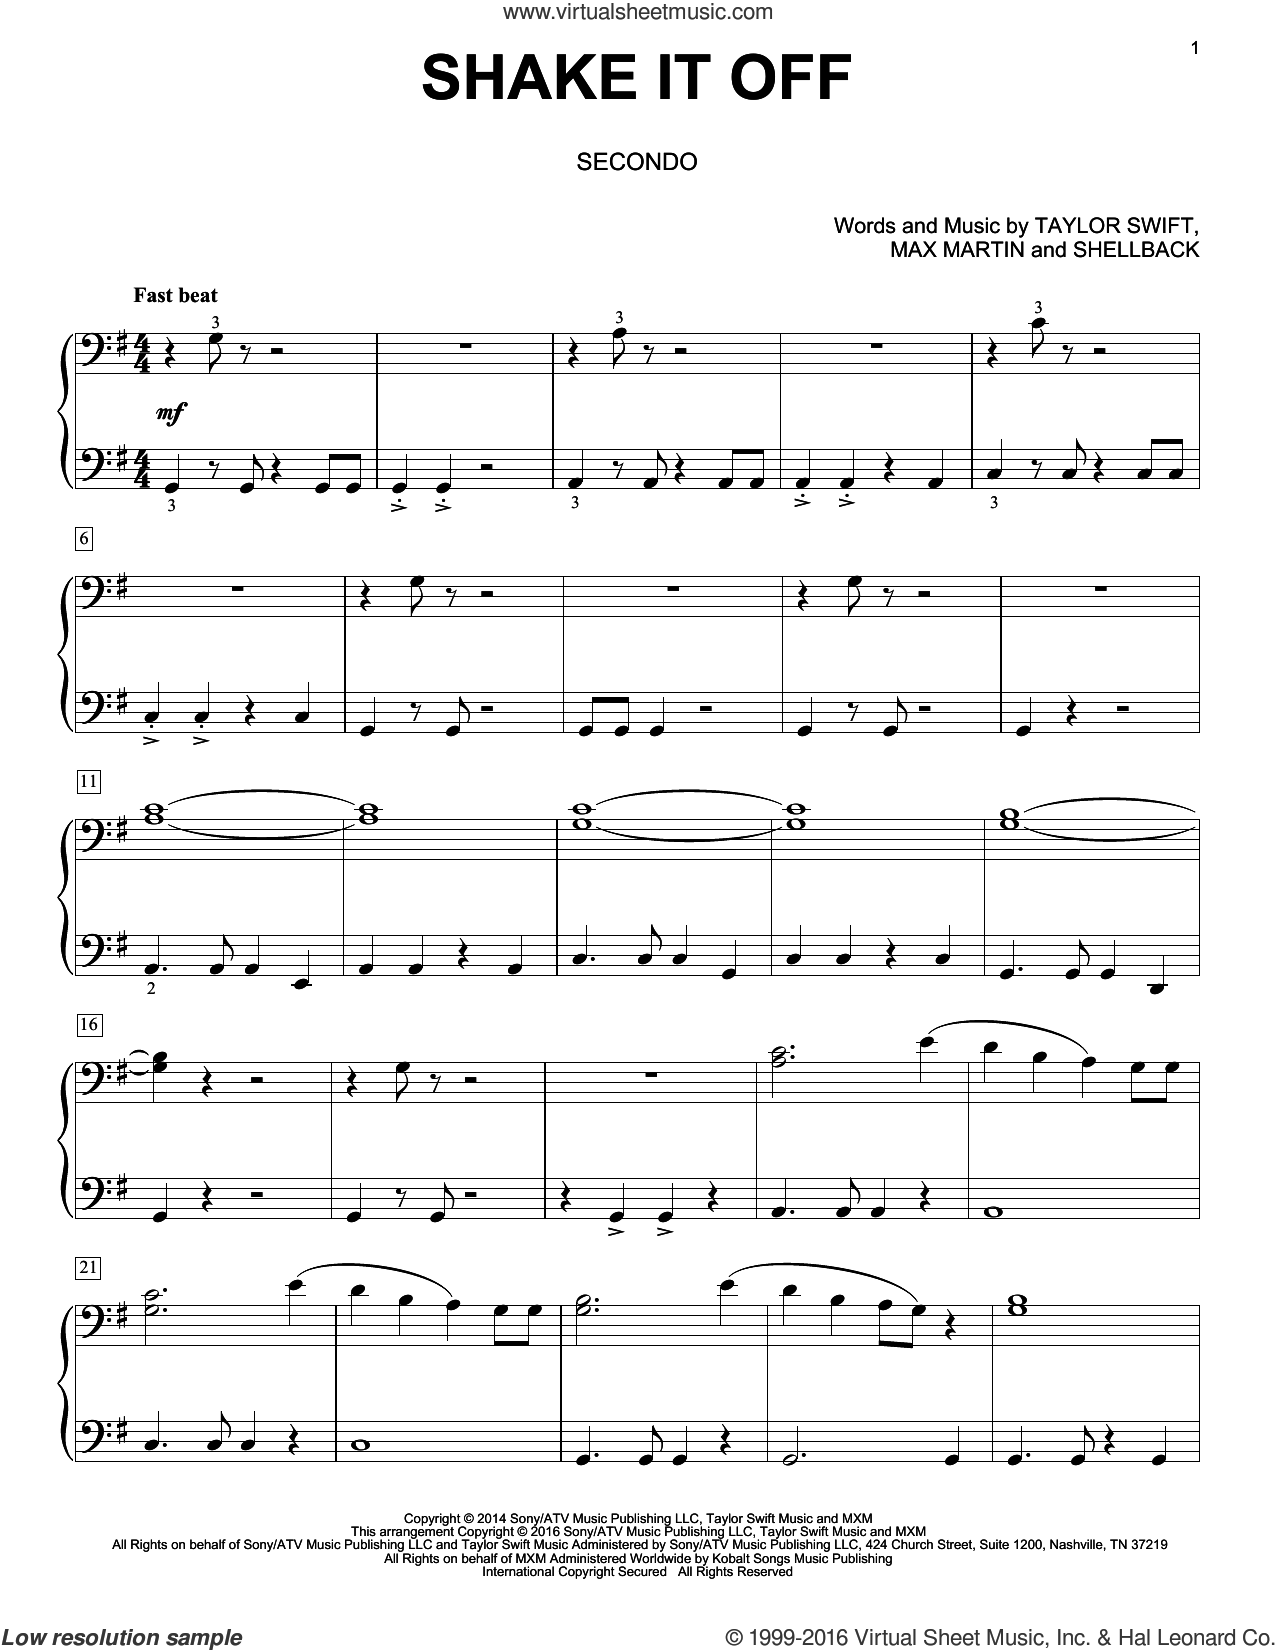 Shake It Off sheet music for piano four hands by Taylor Swift, Eric Baumgartner, Johan Schuster, Max Martin and Shellback, intermediate skill level